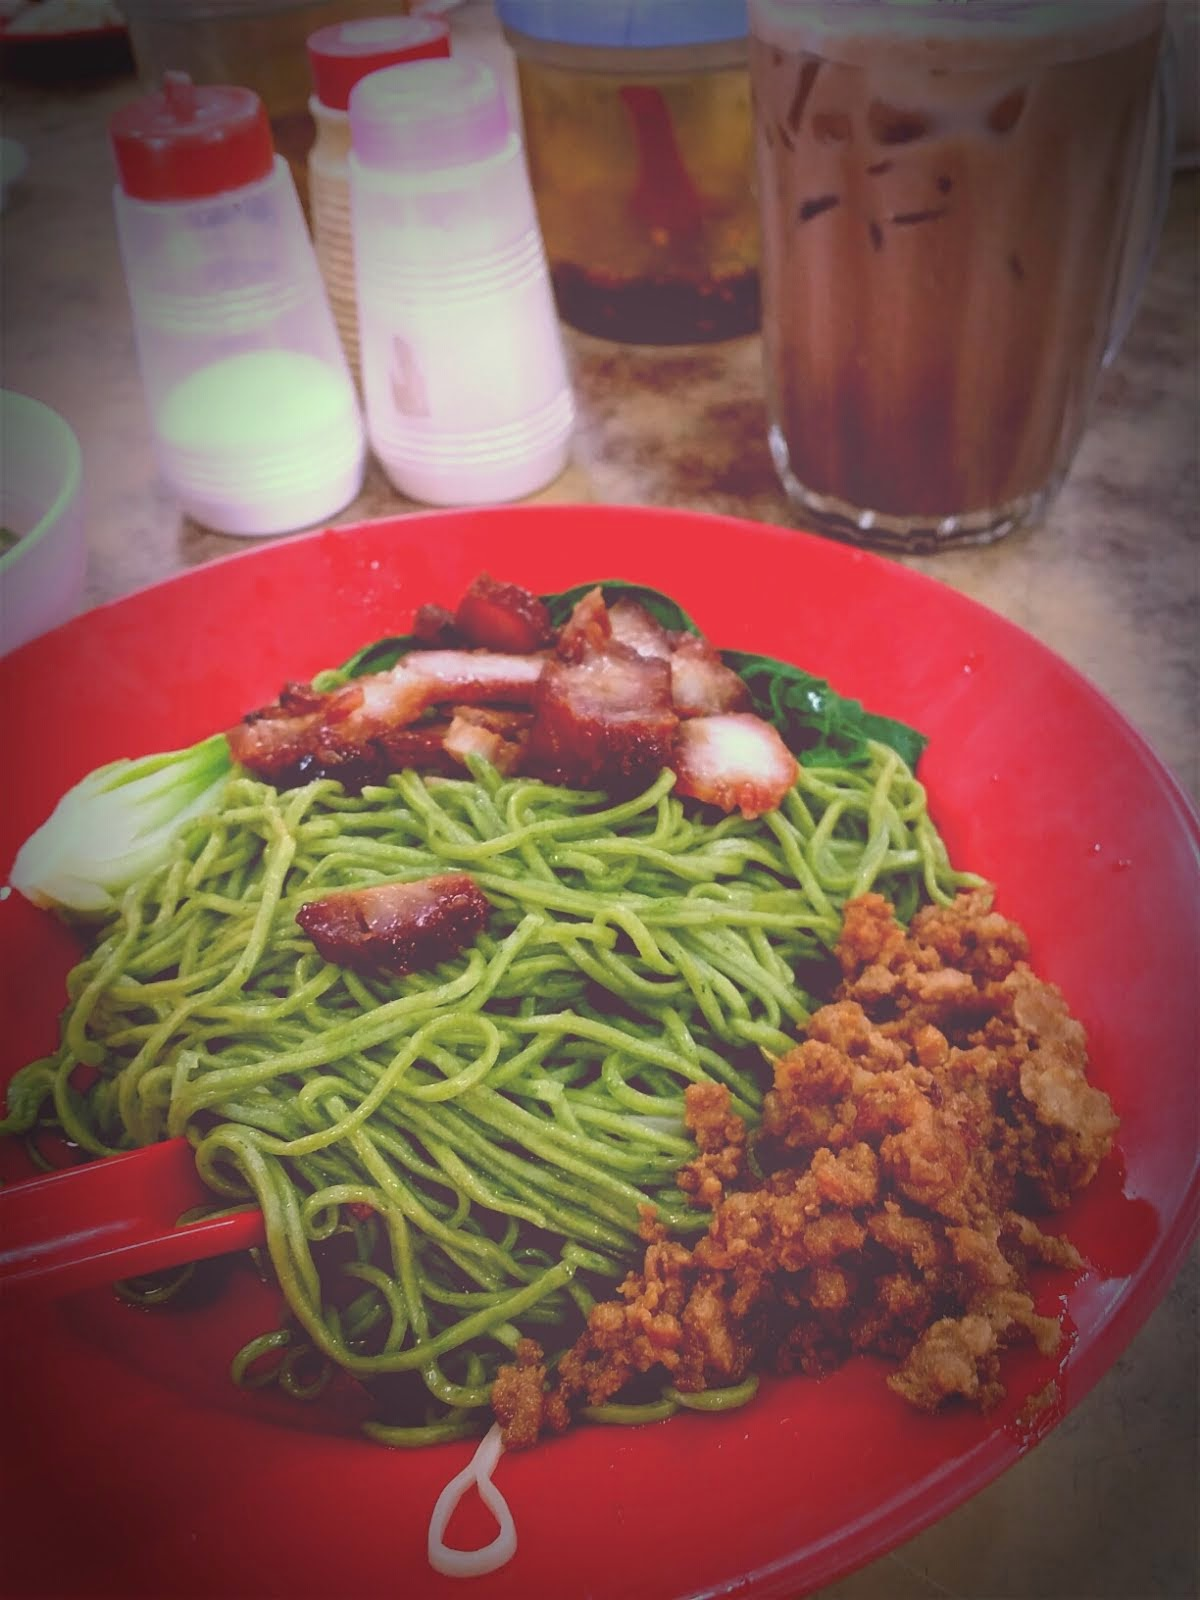 GREEN SPINACH NOODLES AT YOU JIAN RESTAURANT SUBANG 2